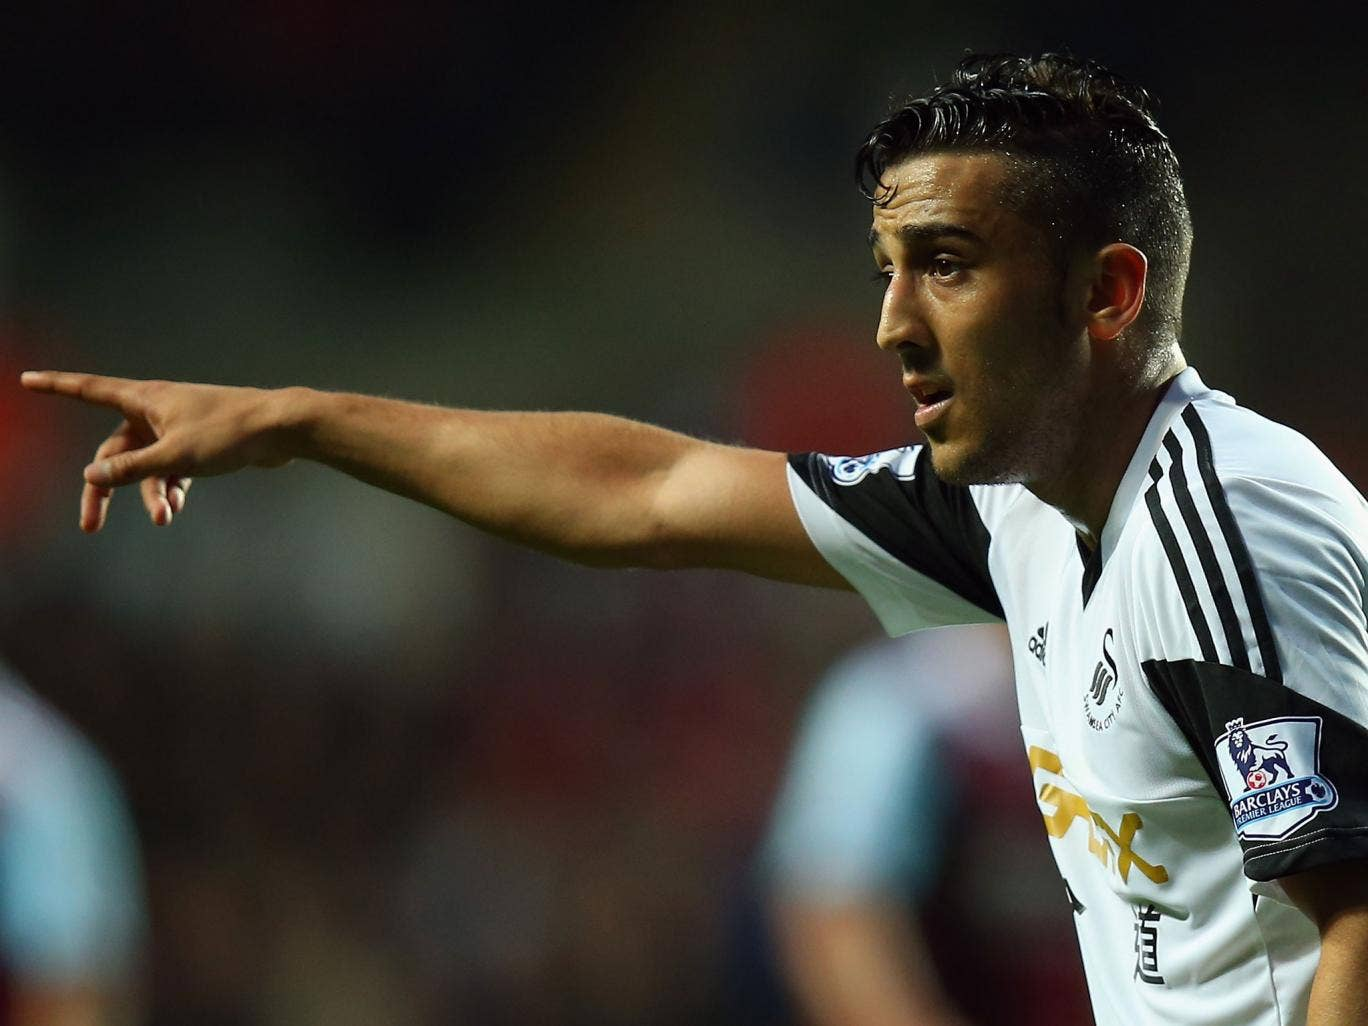 If a Swansea player went out in Cardiff, you'd be spotted, says Neil Taylor... You just save yourself the hassle